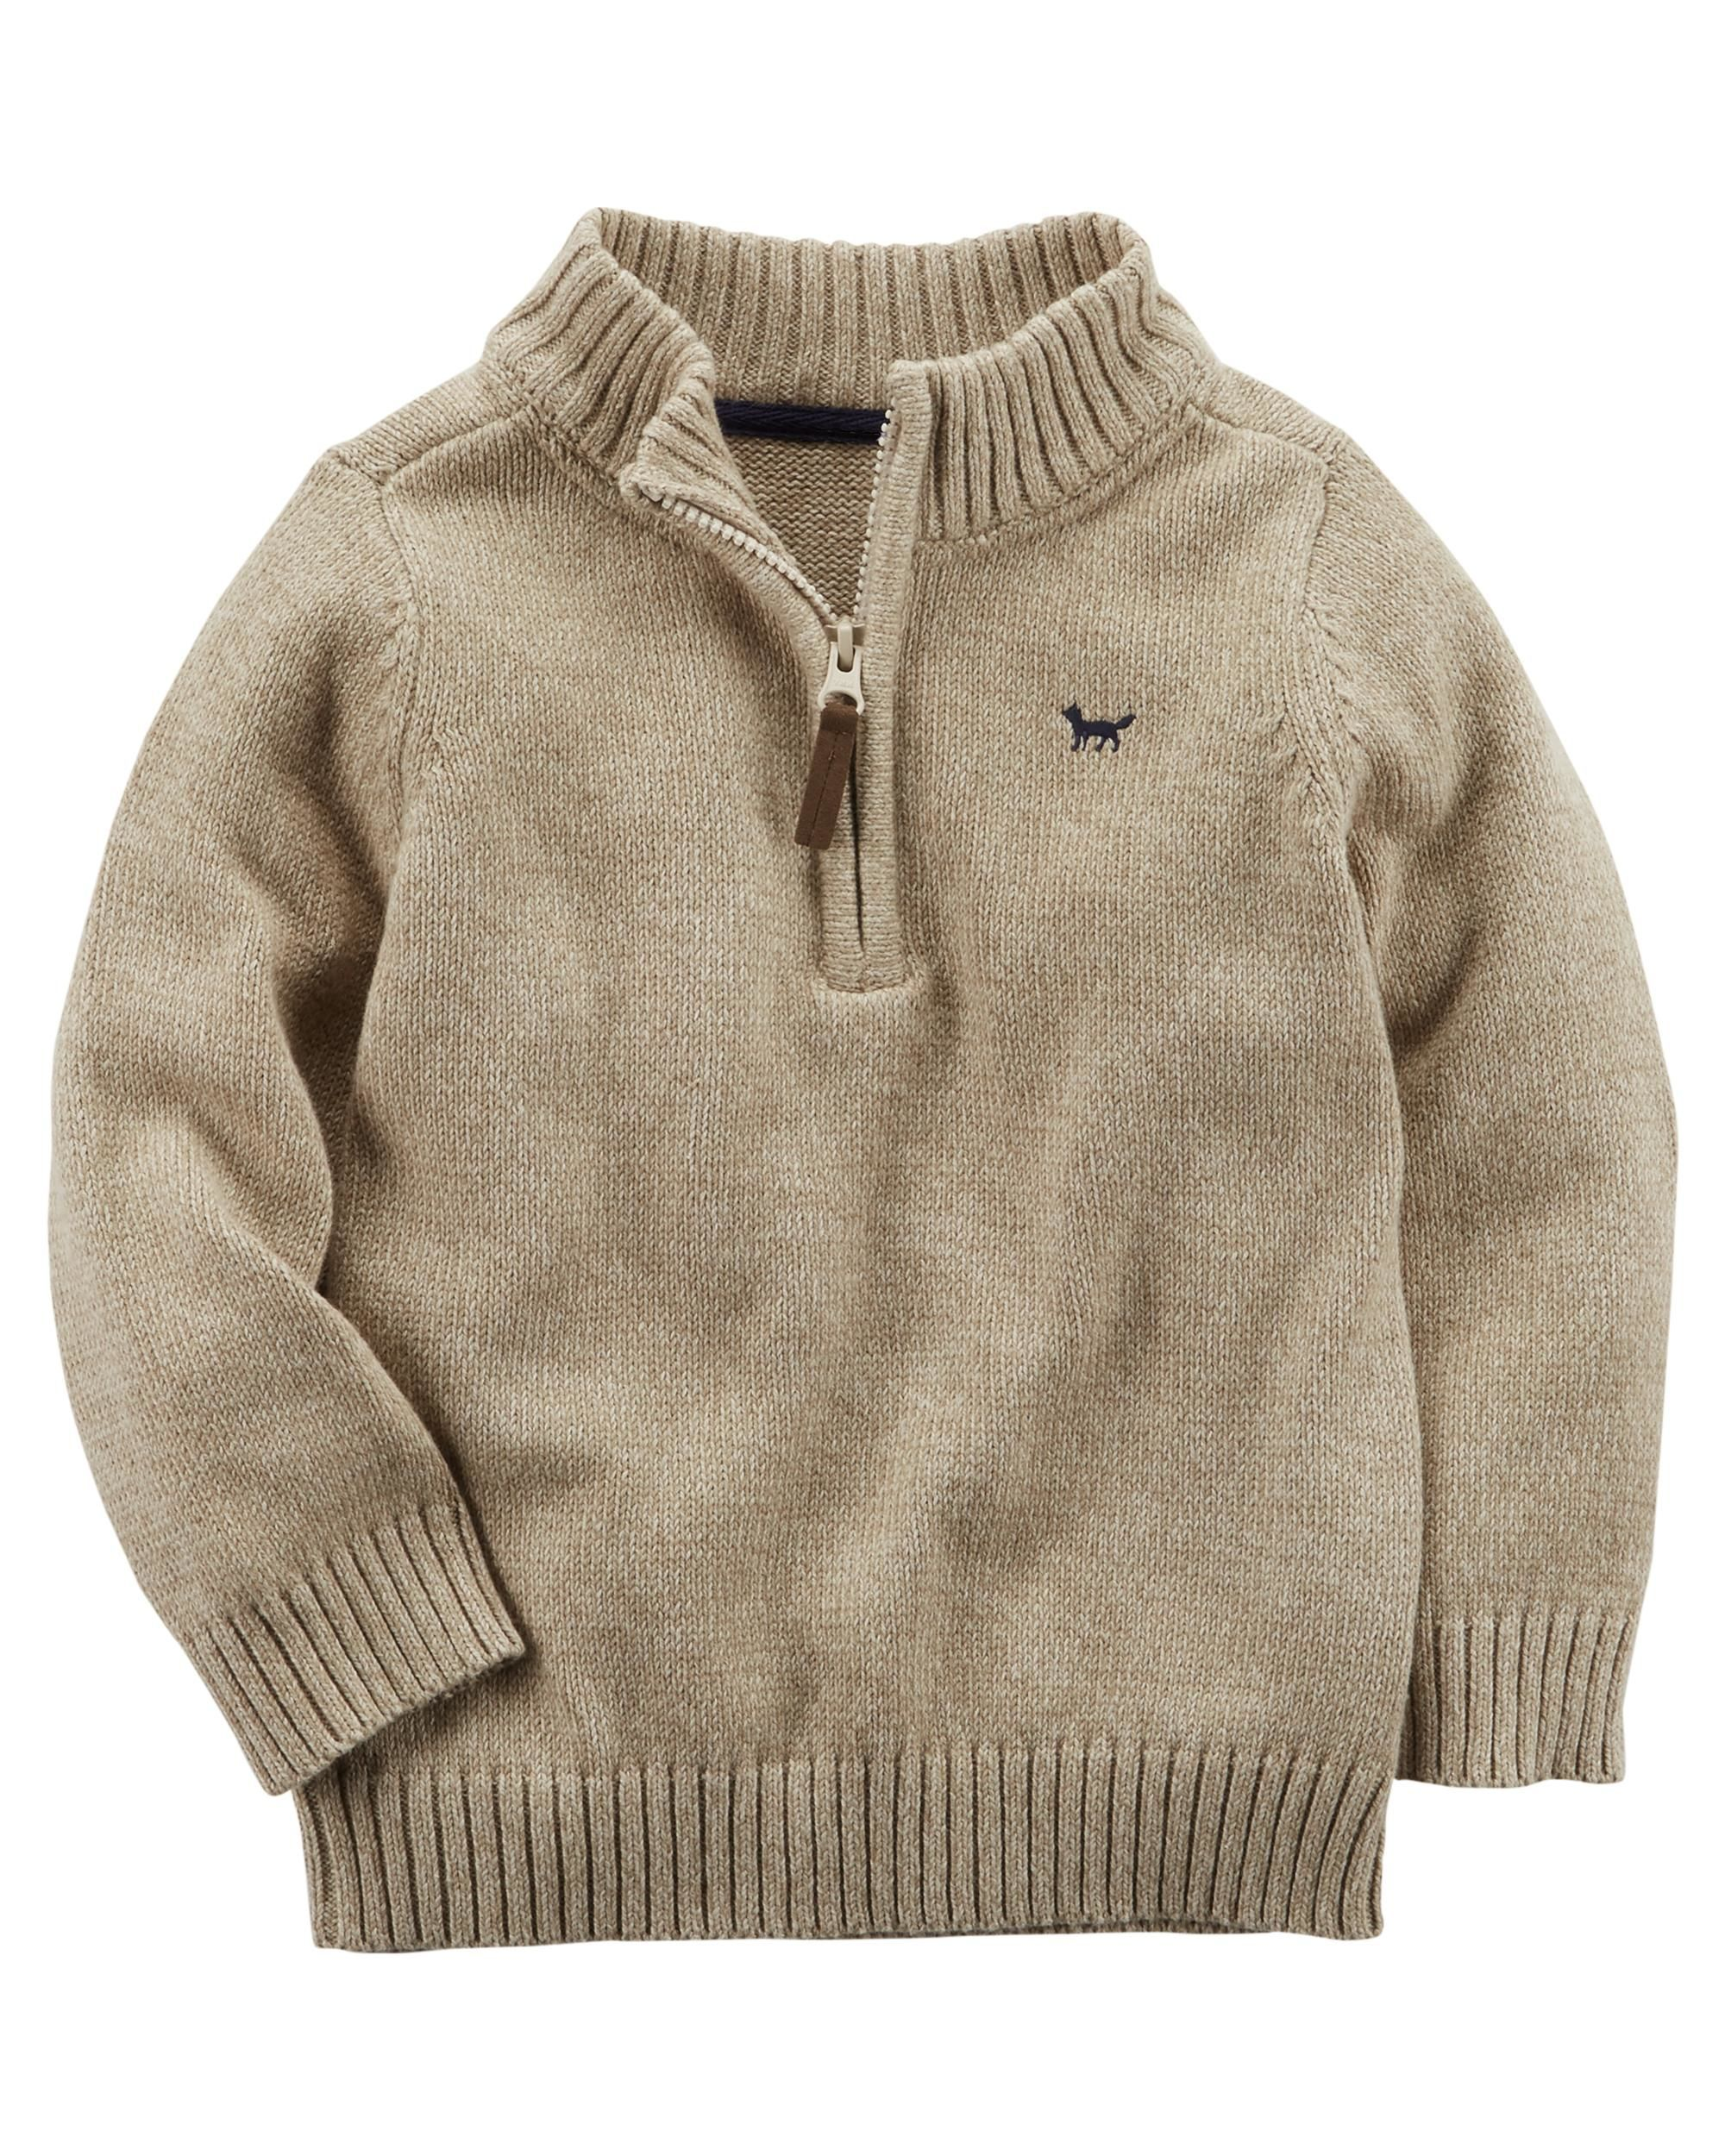 43fa7b5f9 Baby Boy Half-Zip Sweater from Carters.com. Shop clothing & accessories  from a trusted name in kids, toddlers, and baby clothes.